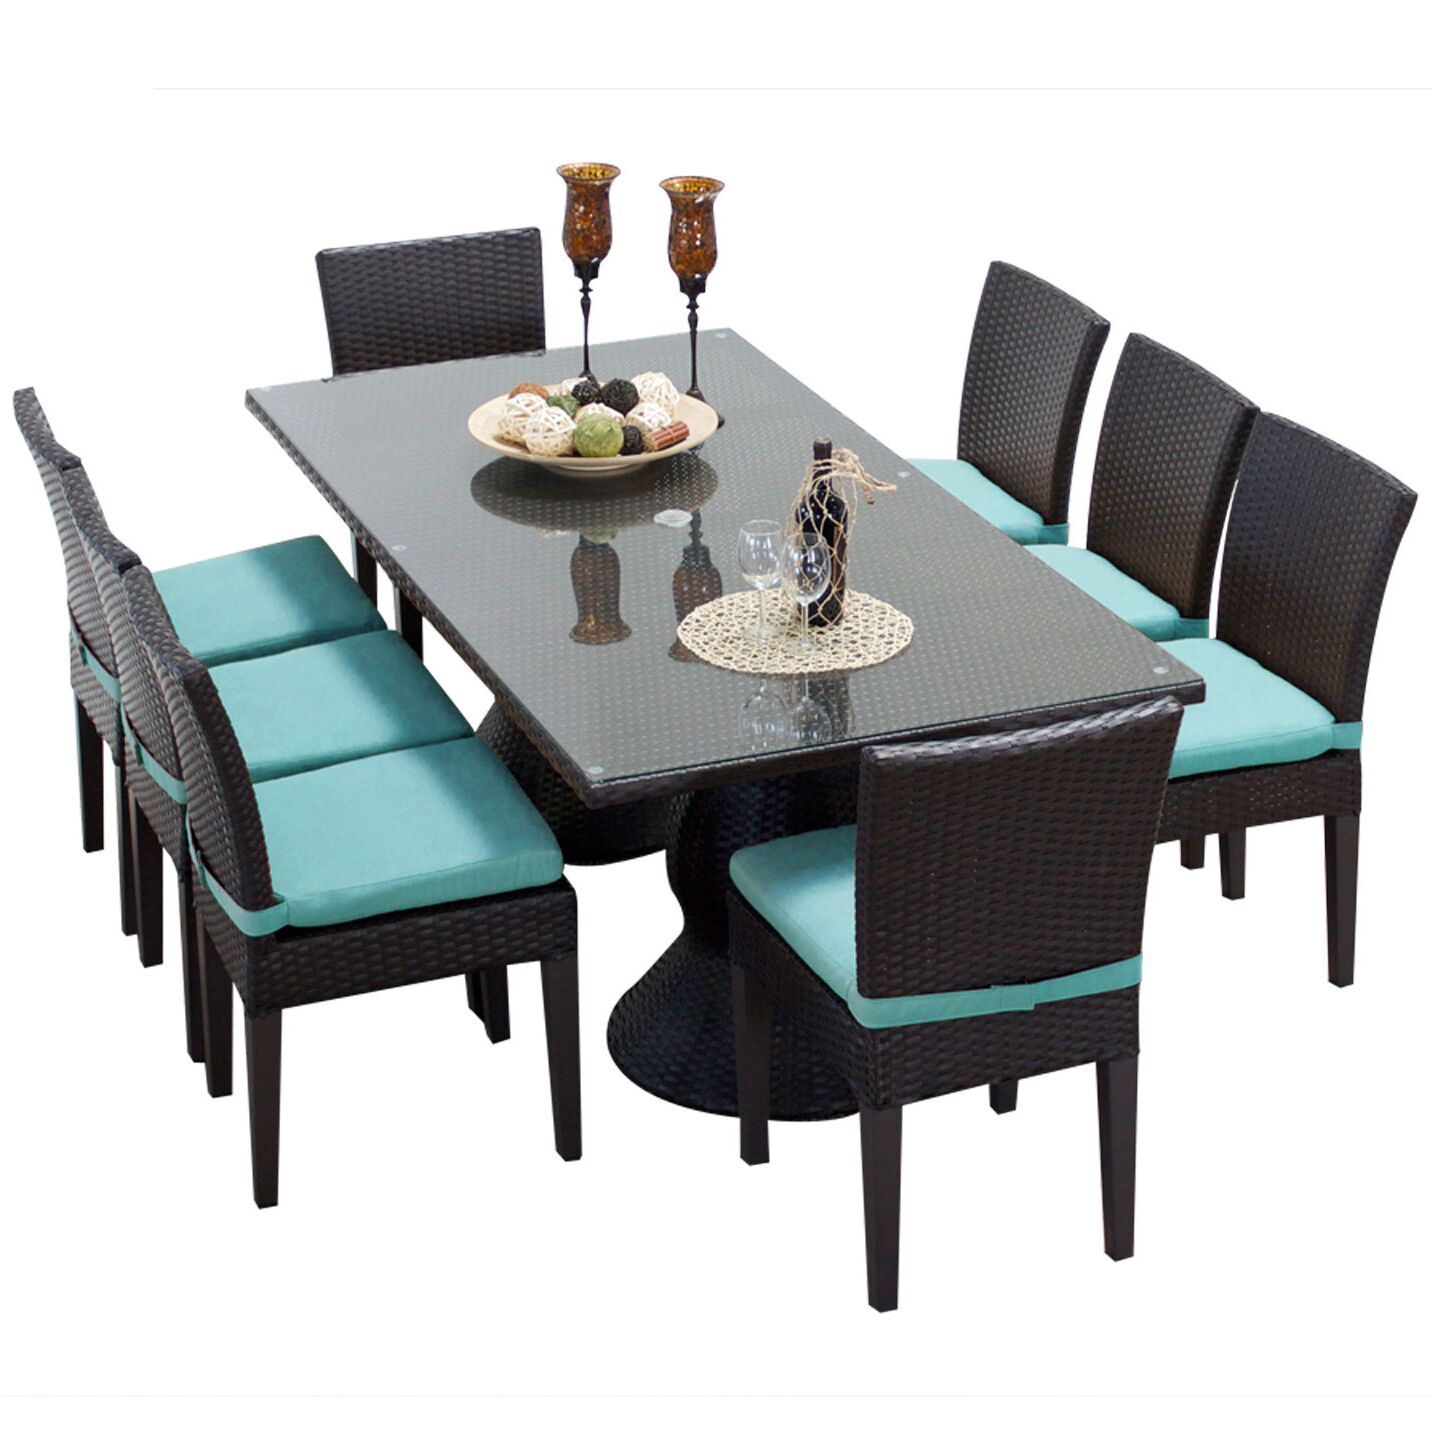 Napa 9 Piece Dining Set with Cushions Cushion Color: Aruba